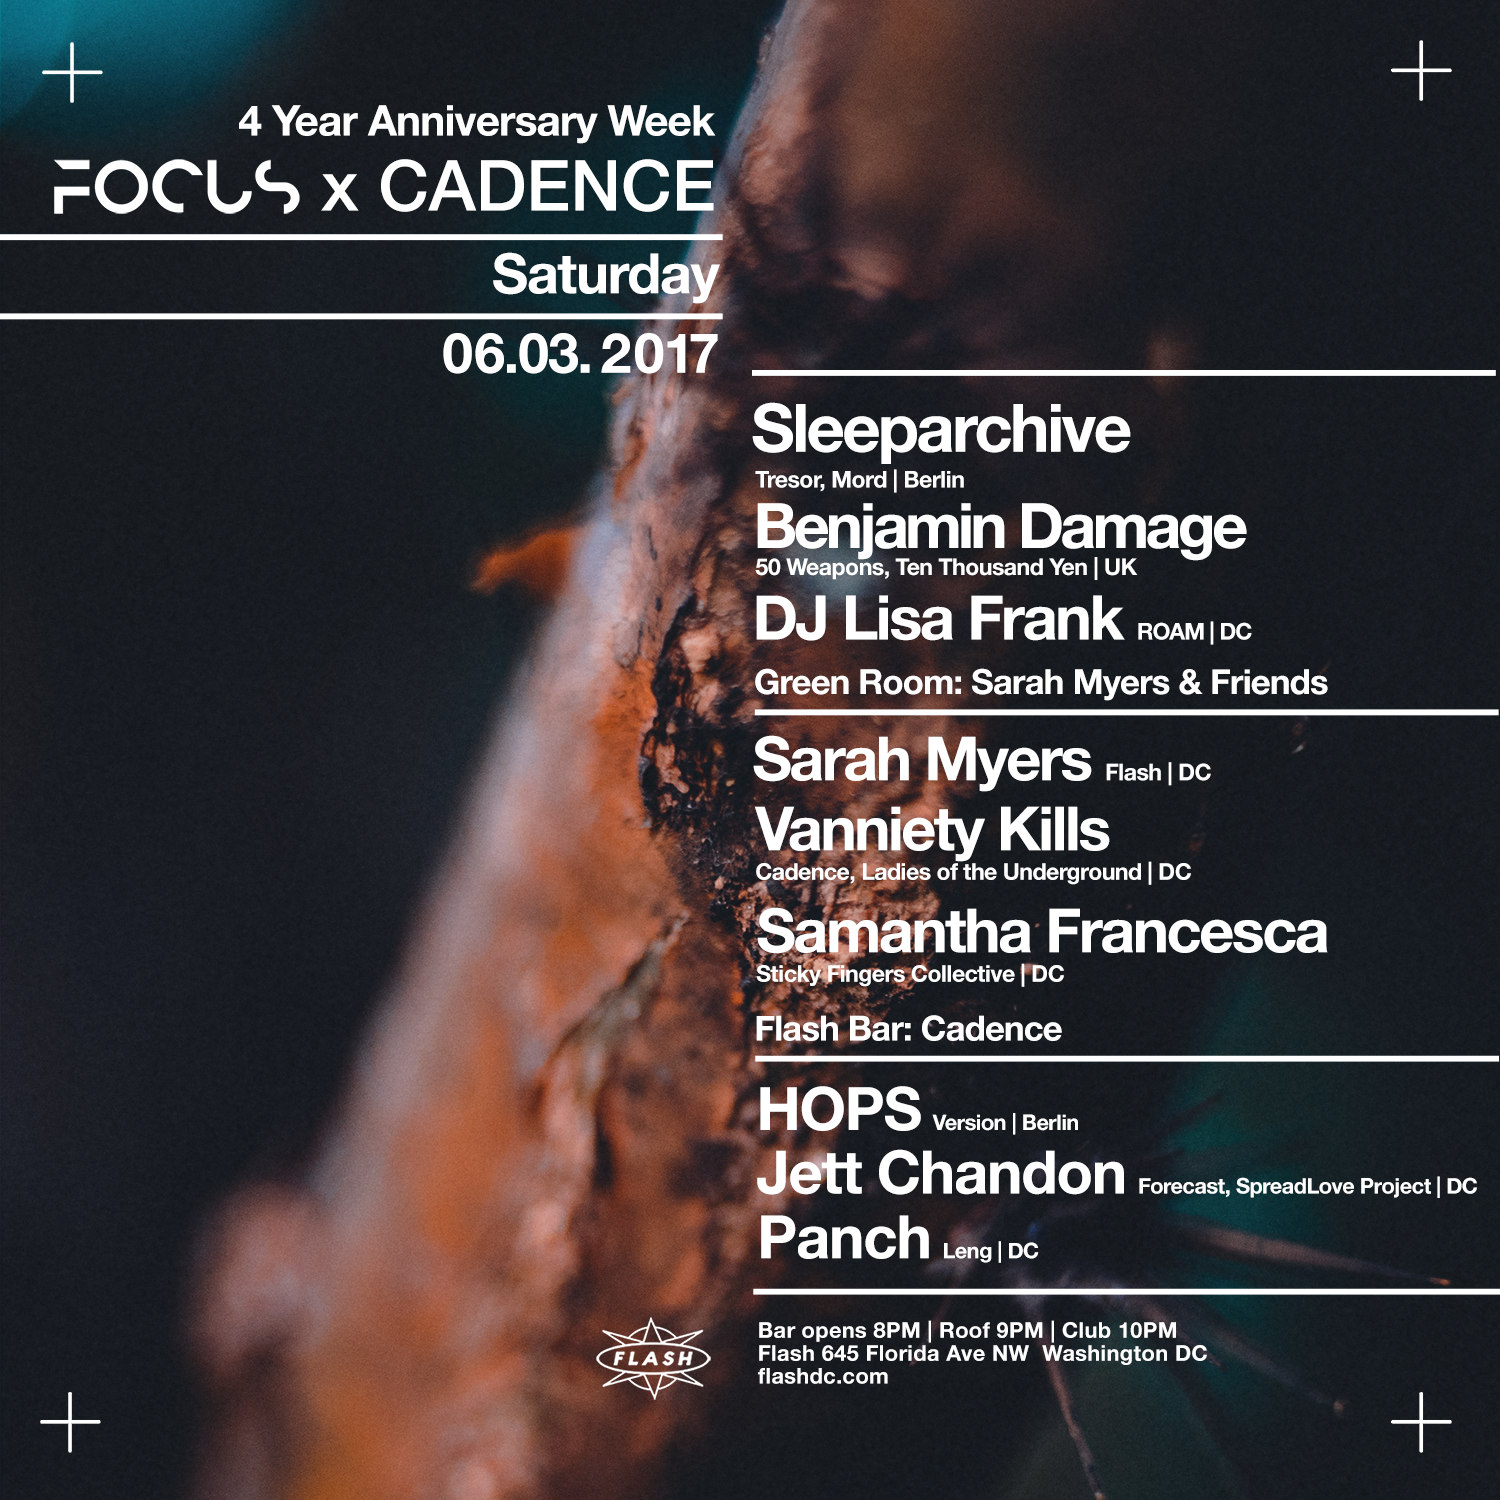 4 Year Anniversary Week: FOCUS x Cadence: Sleeparchive / Benjamin Damage / Hops ( Berlin ) / DJ Lisa Frank / Sarah Myers & Friends event thumbnail